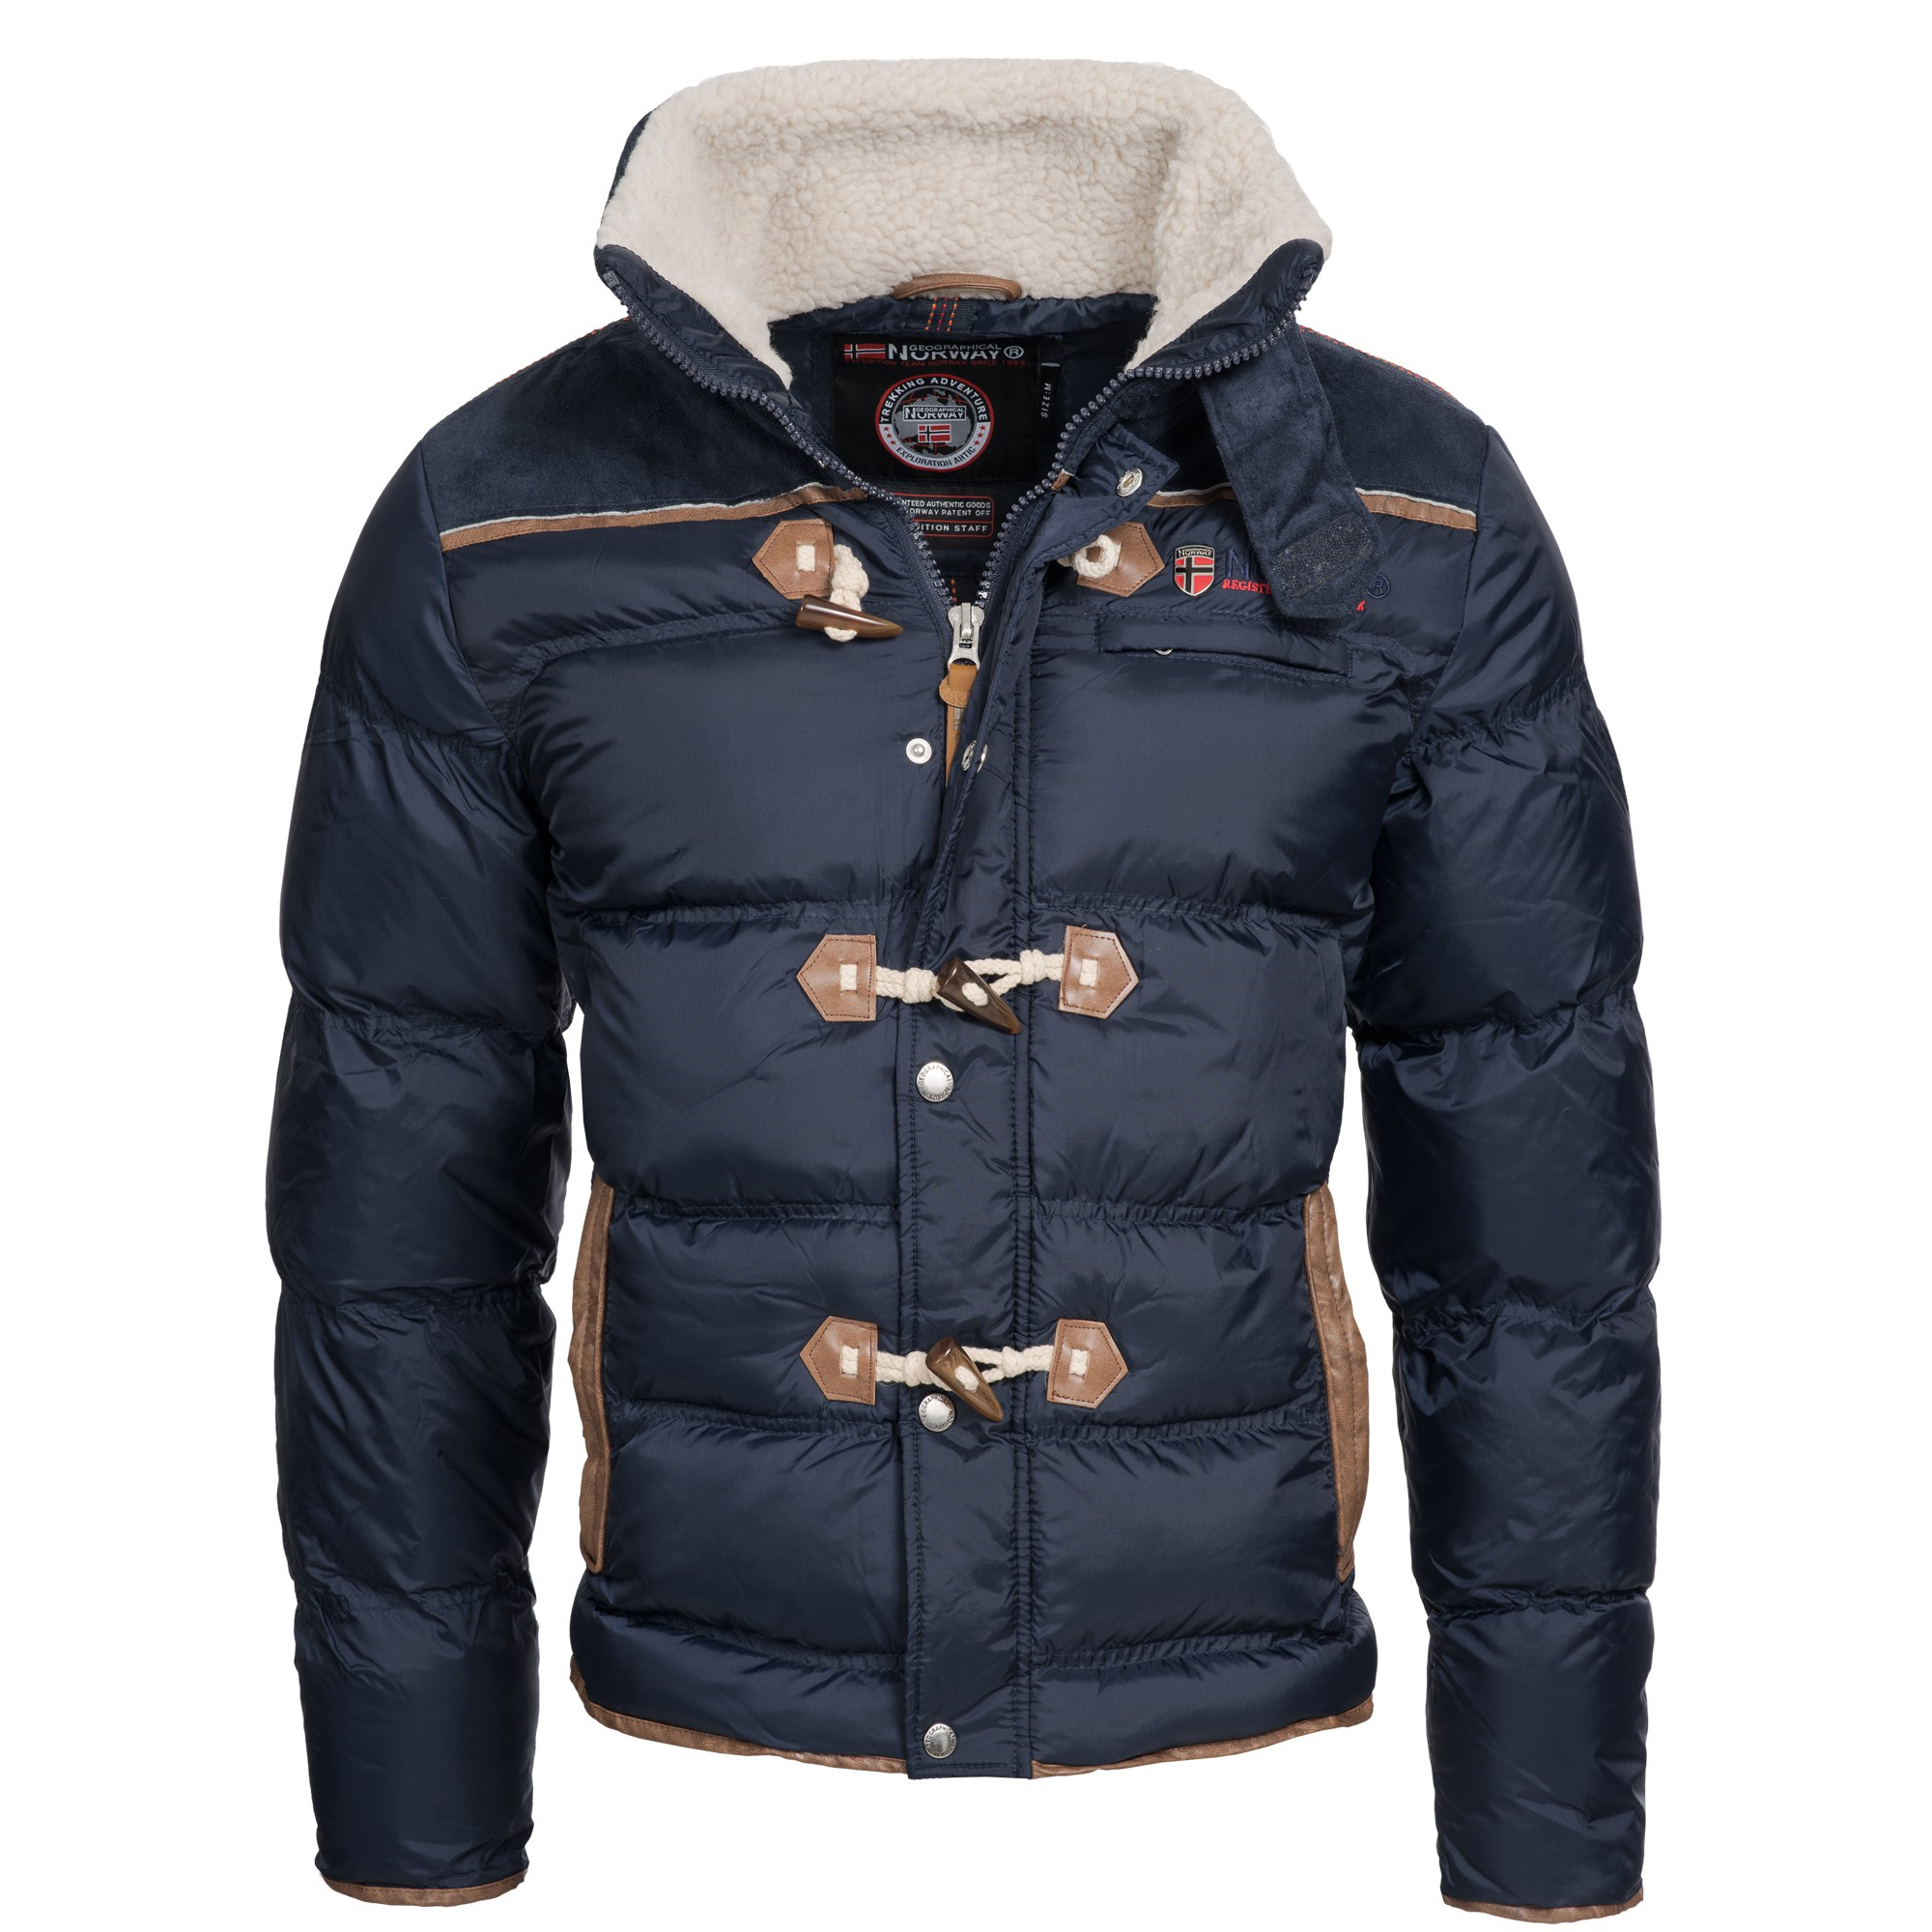 herren jacke steppjacke winterjacke geographical norway navy modische jacken dieser saison. Black Bedroom Furniture Sets. Home Design Ideas